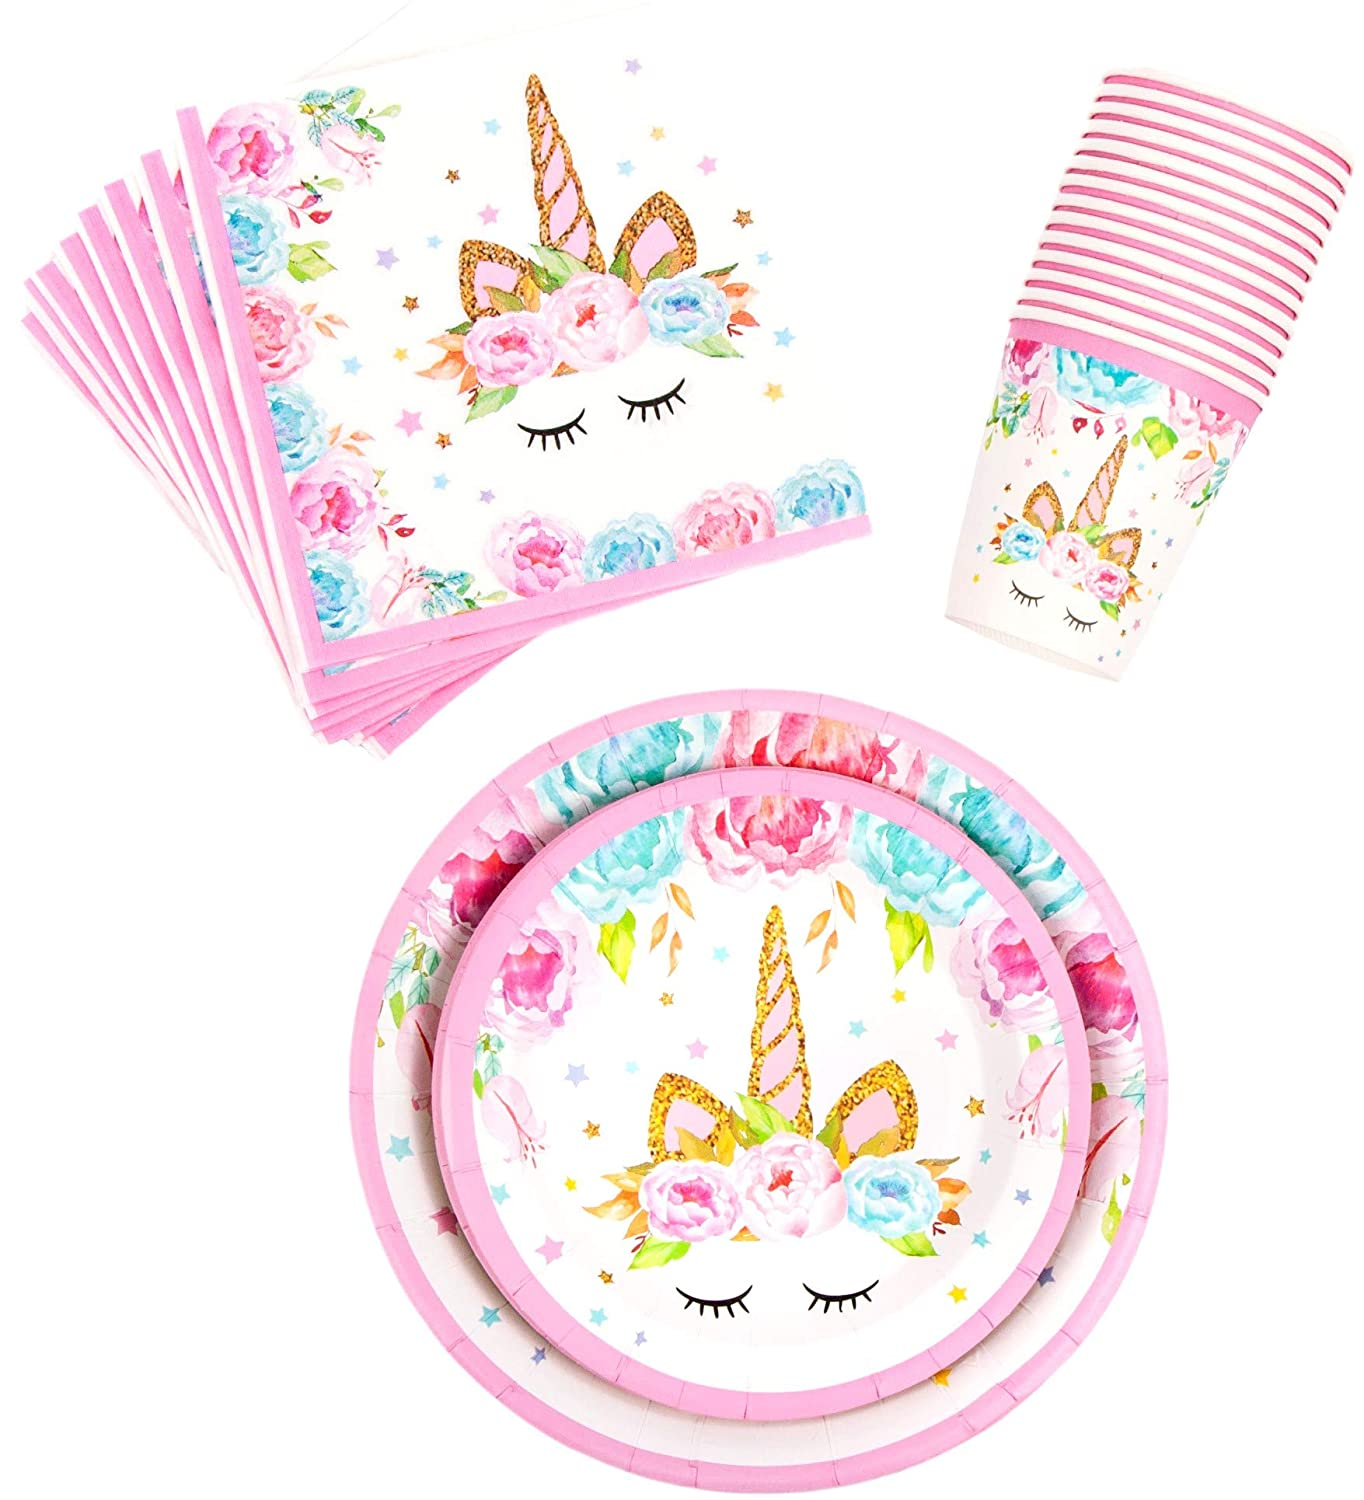 Banner Girls Birthday Decorations Set Decor Theme Magical Rainbow Princess Tableware Pack Includes: Big and Small Plates Cups Napkins BleuZoo Unicorn Party Supplies Serves 16 Forks Knives Spoons Tablecloth